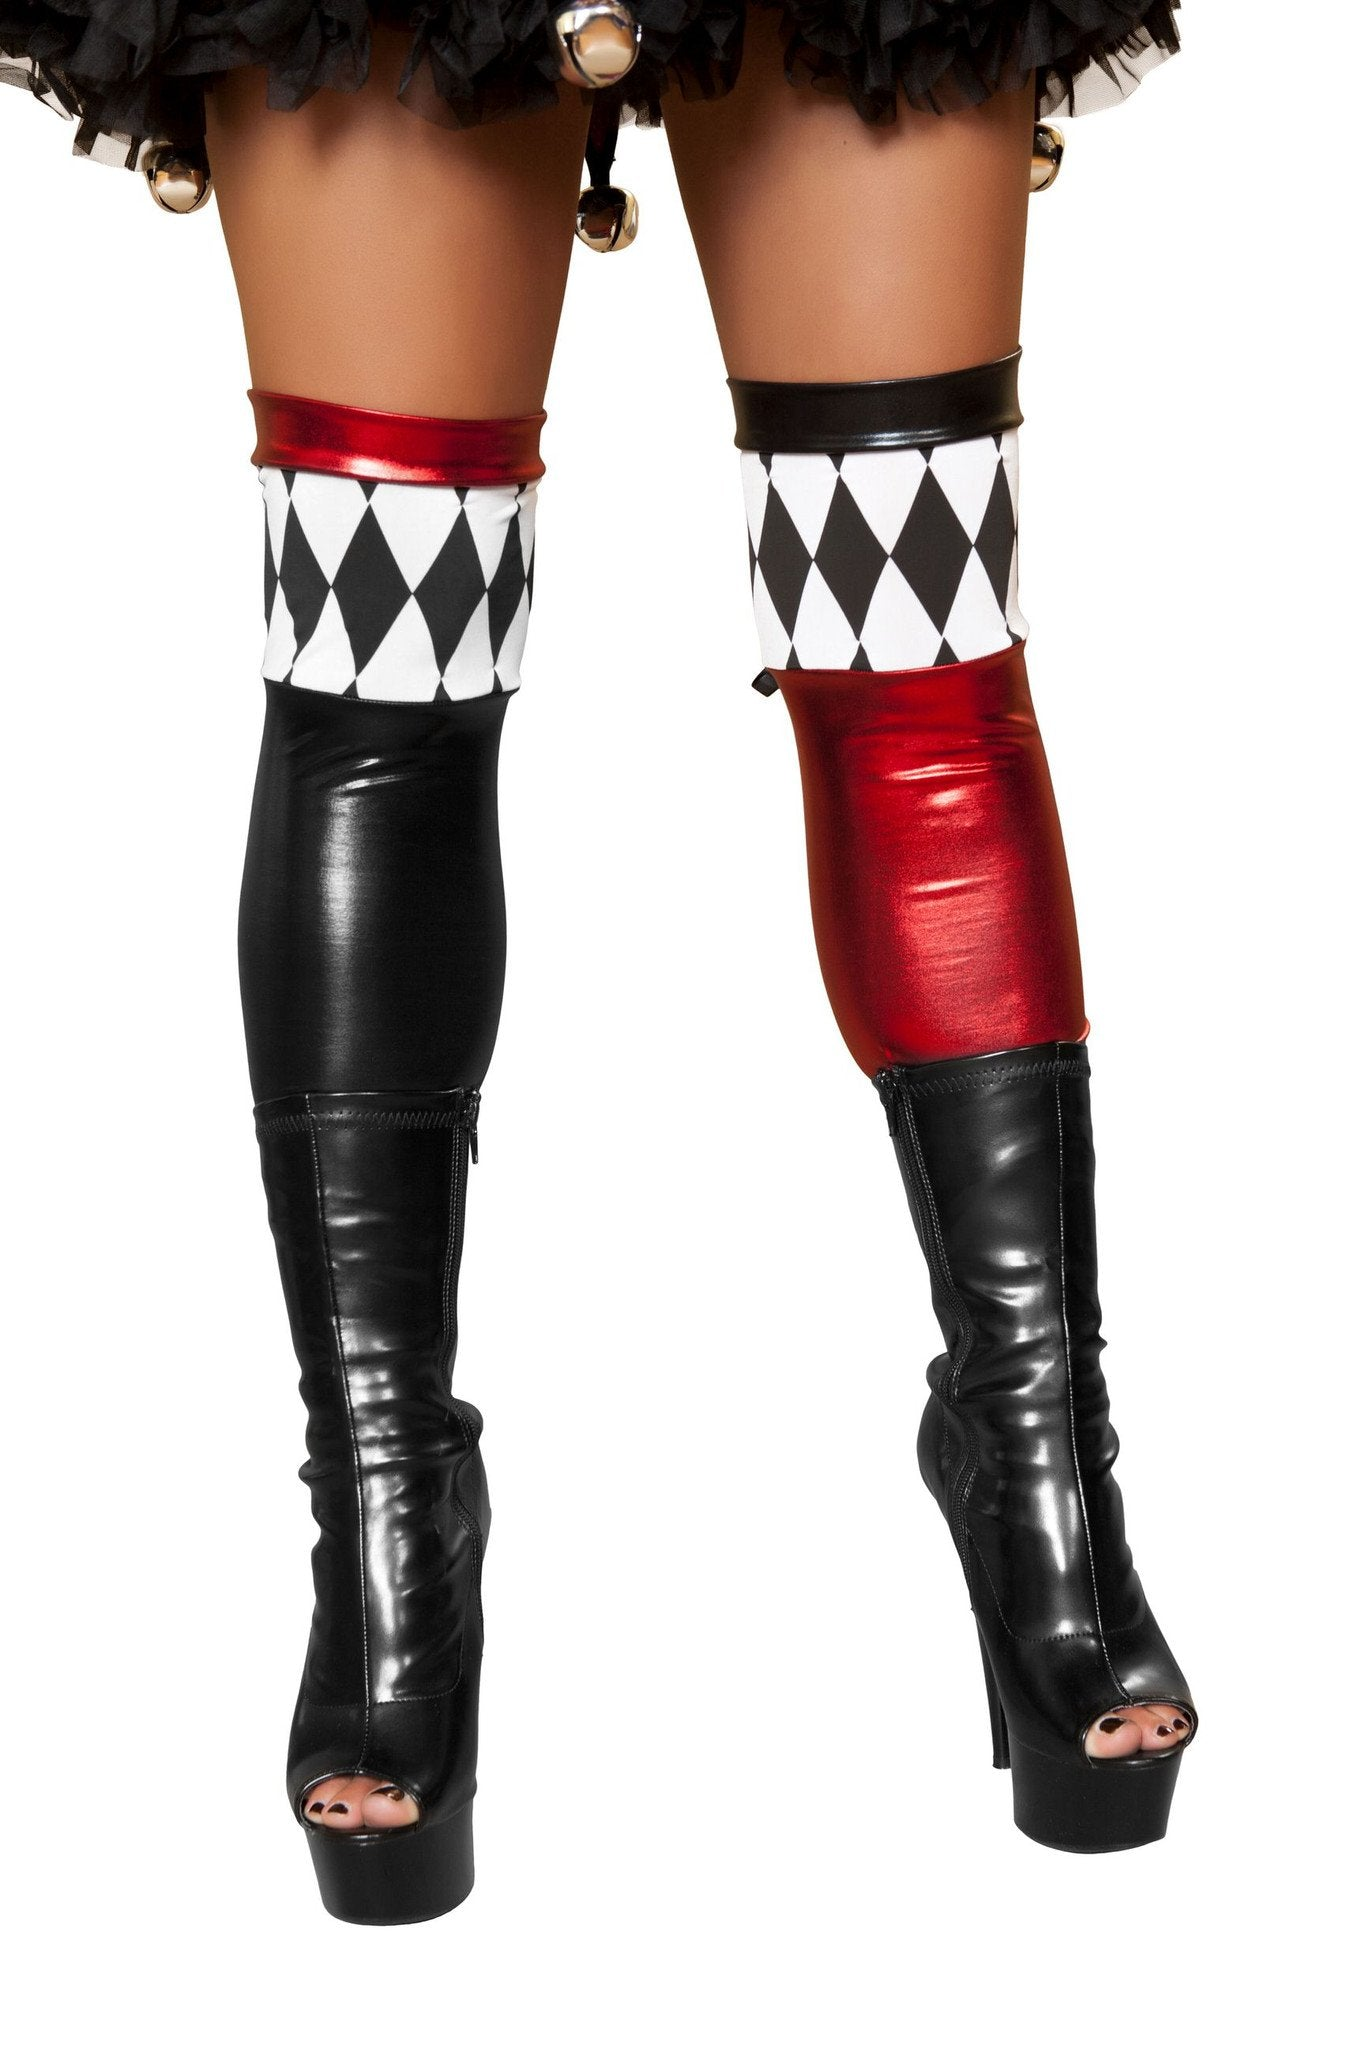 Red and Black metallic Jester Stockings